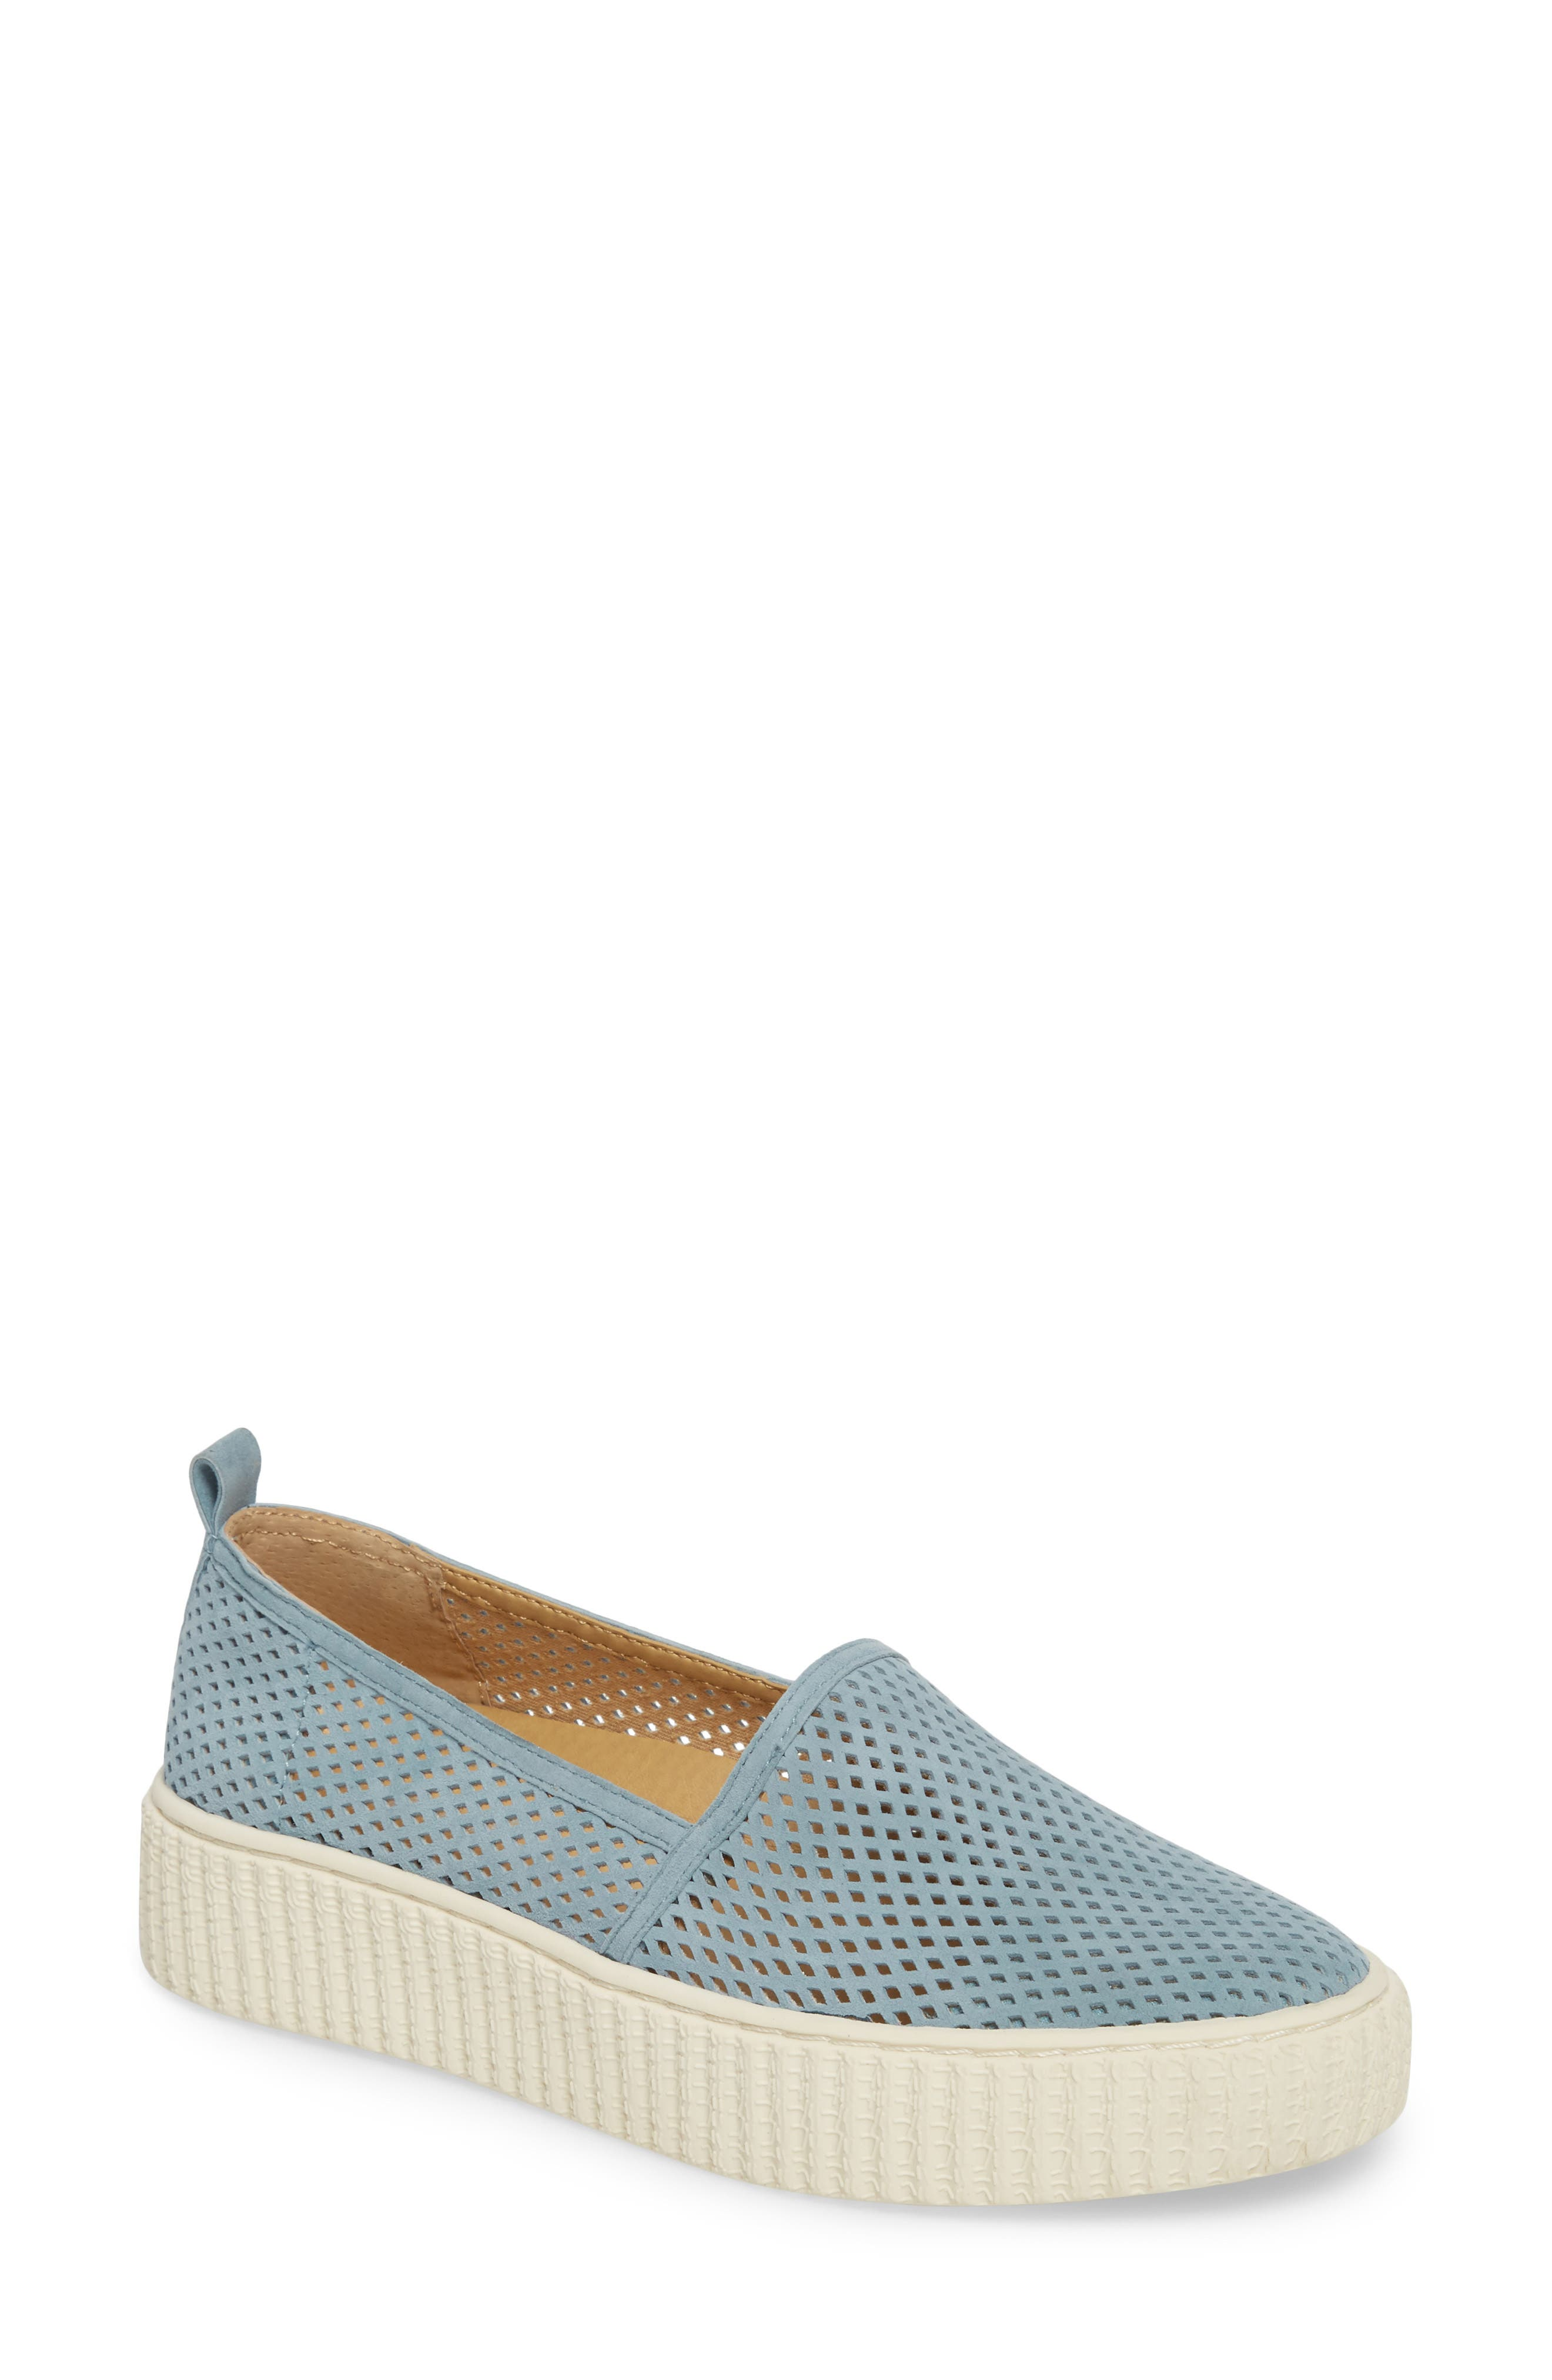 Splendid Bennett Perforated Platform Slip-On gKmeSnCoQV